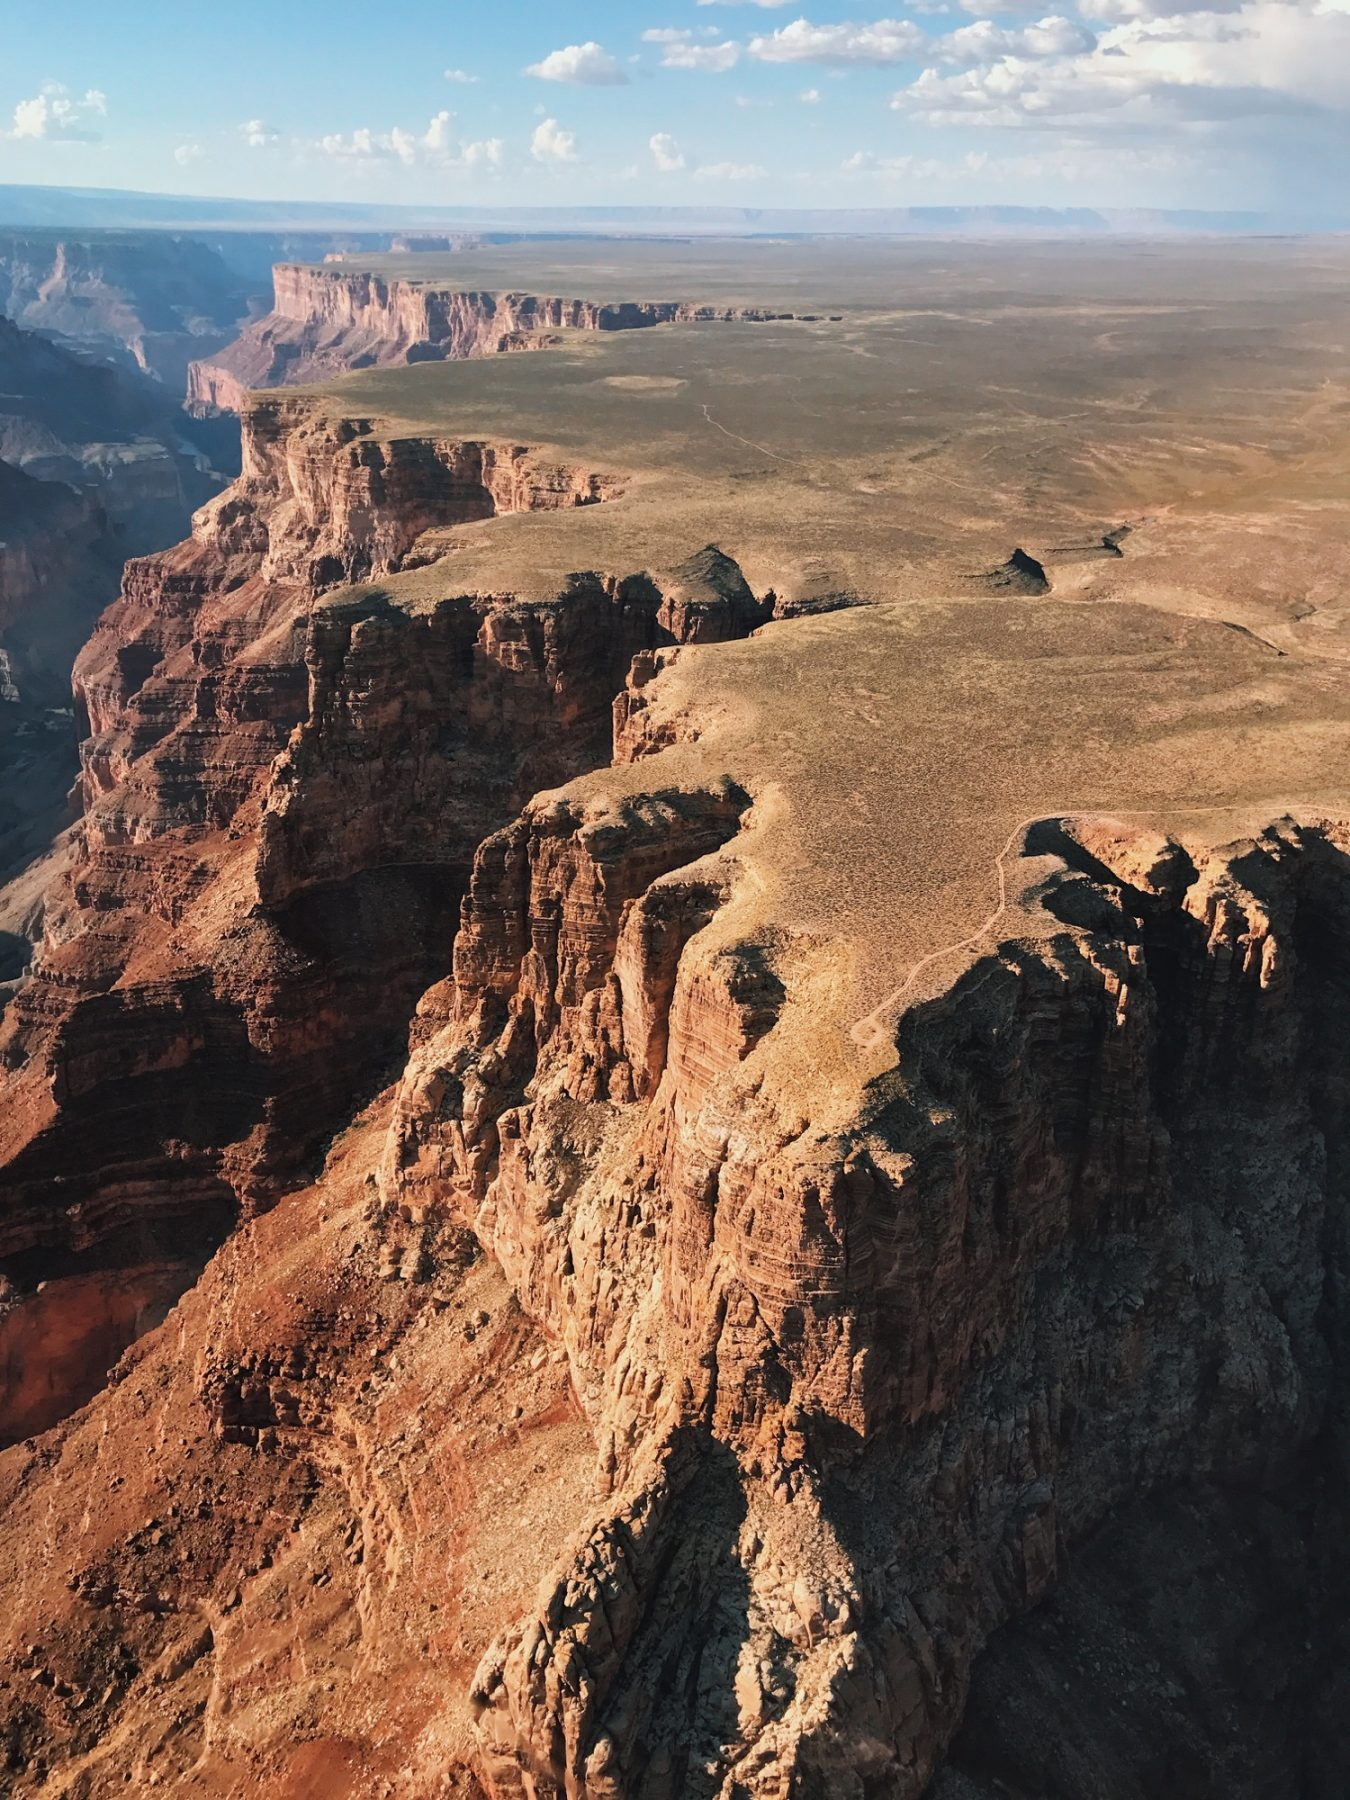 USA road trip, desert road trip, road trip itinerary, USA travel, travel ideas, grand canyon